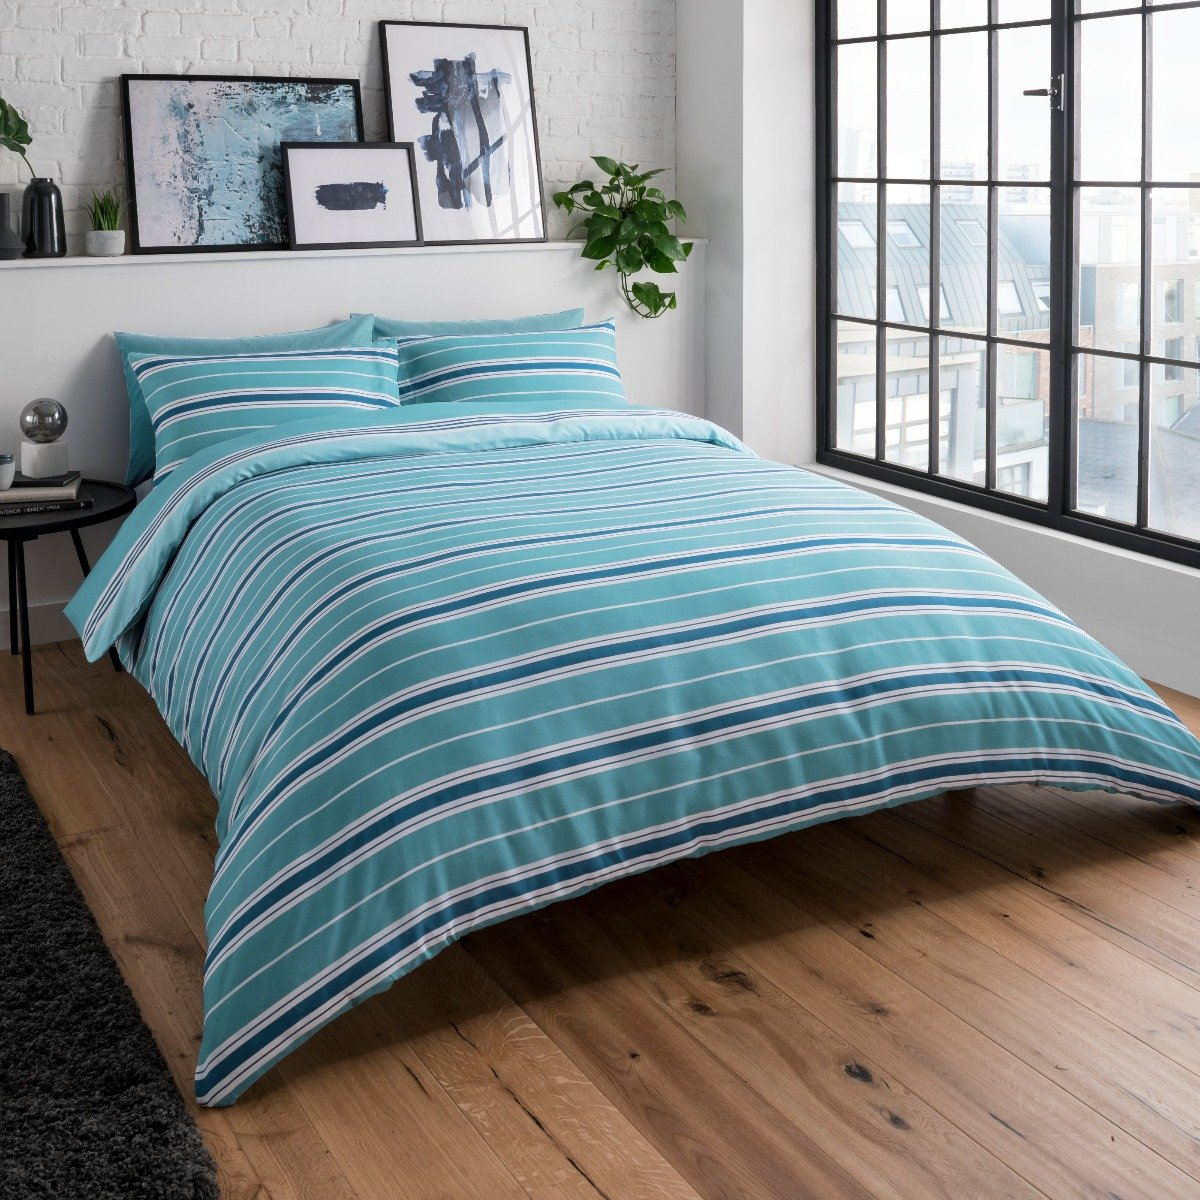 Banded Stripe Teal Bedding Set Sleepdown Official Uk Duvet Cover Sets Bedding Linen